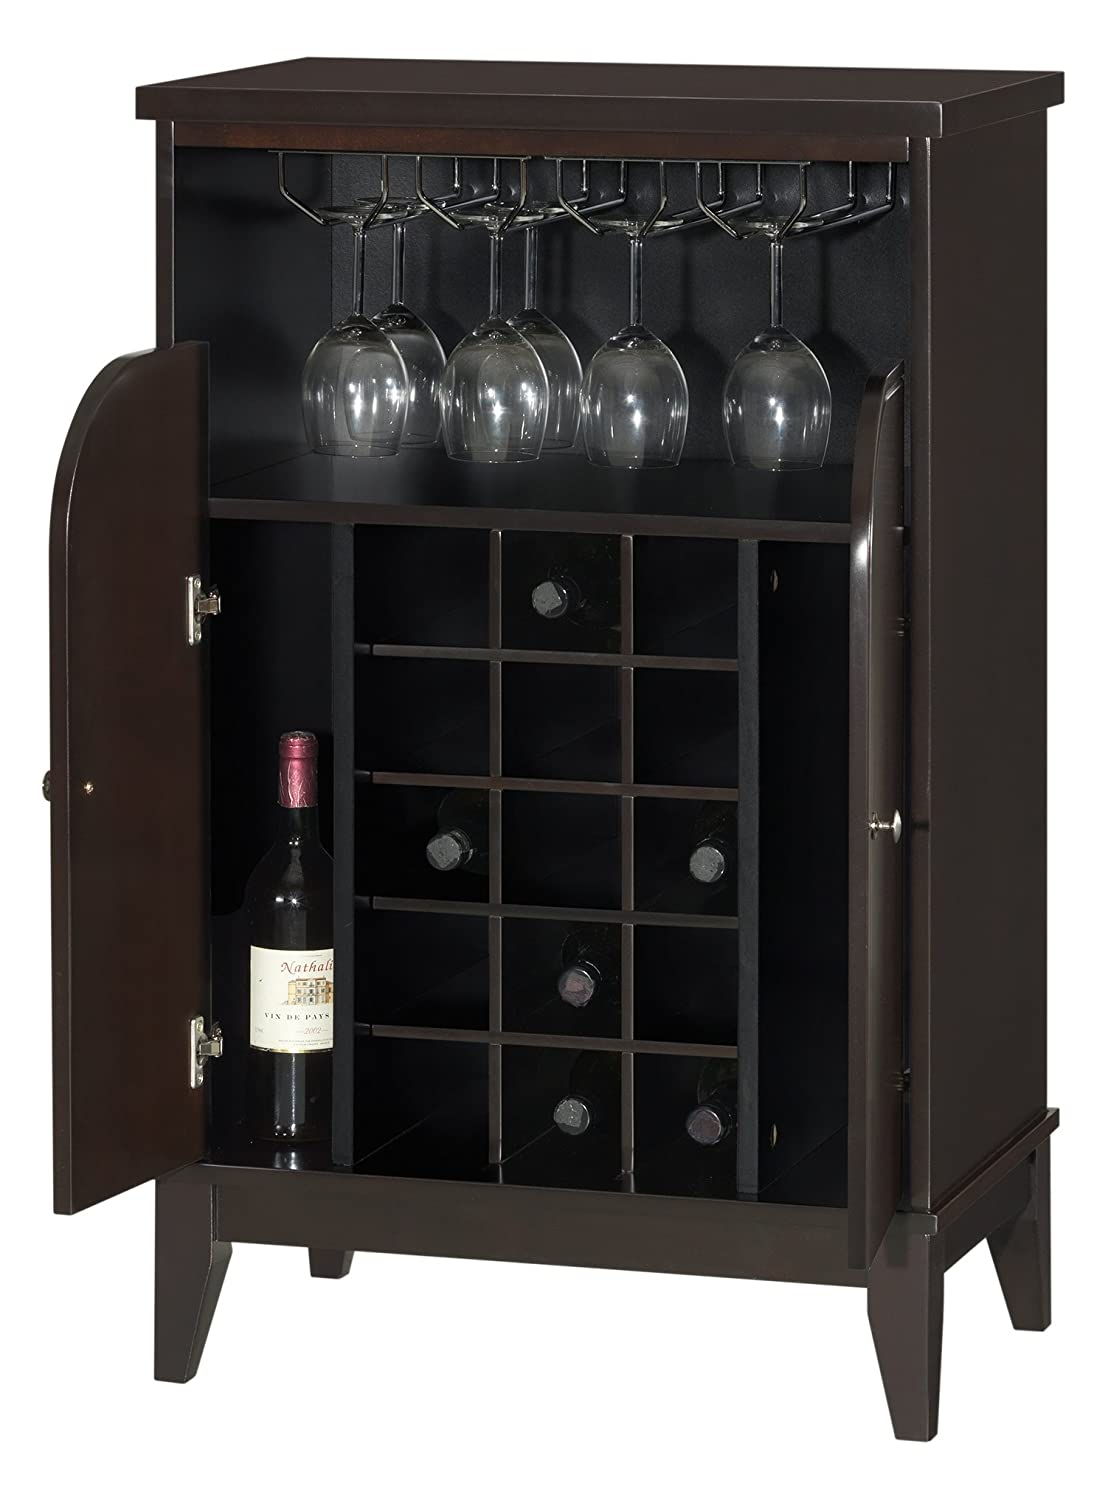 Baxton Studio Easton Modern and Contemporary Wood Dry Bar and Wine Cabinet, Dark Brown Wholesale Interiors RT378--OCC